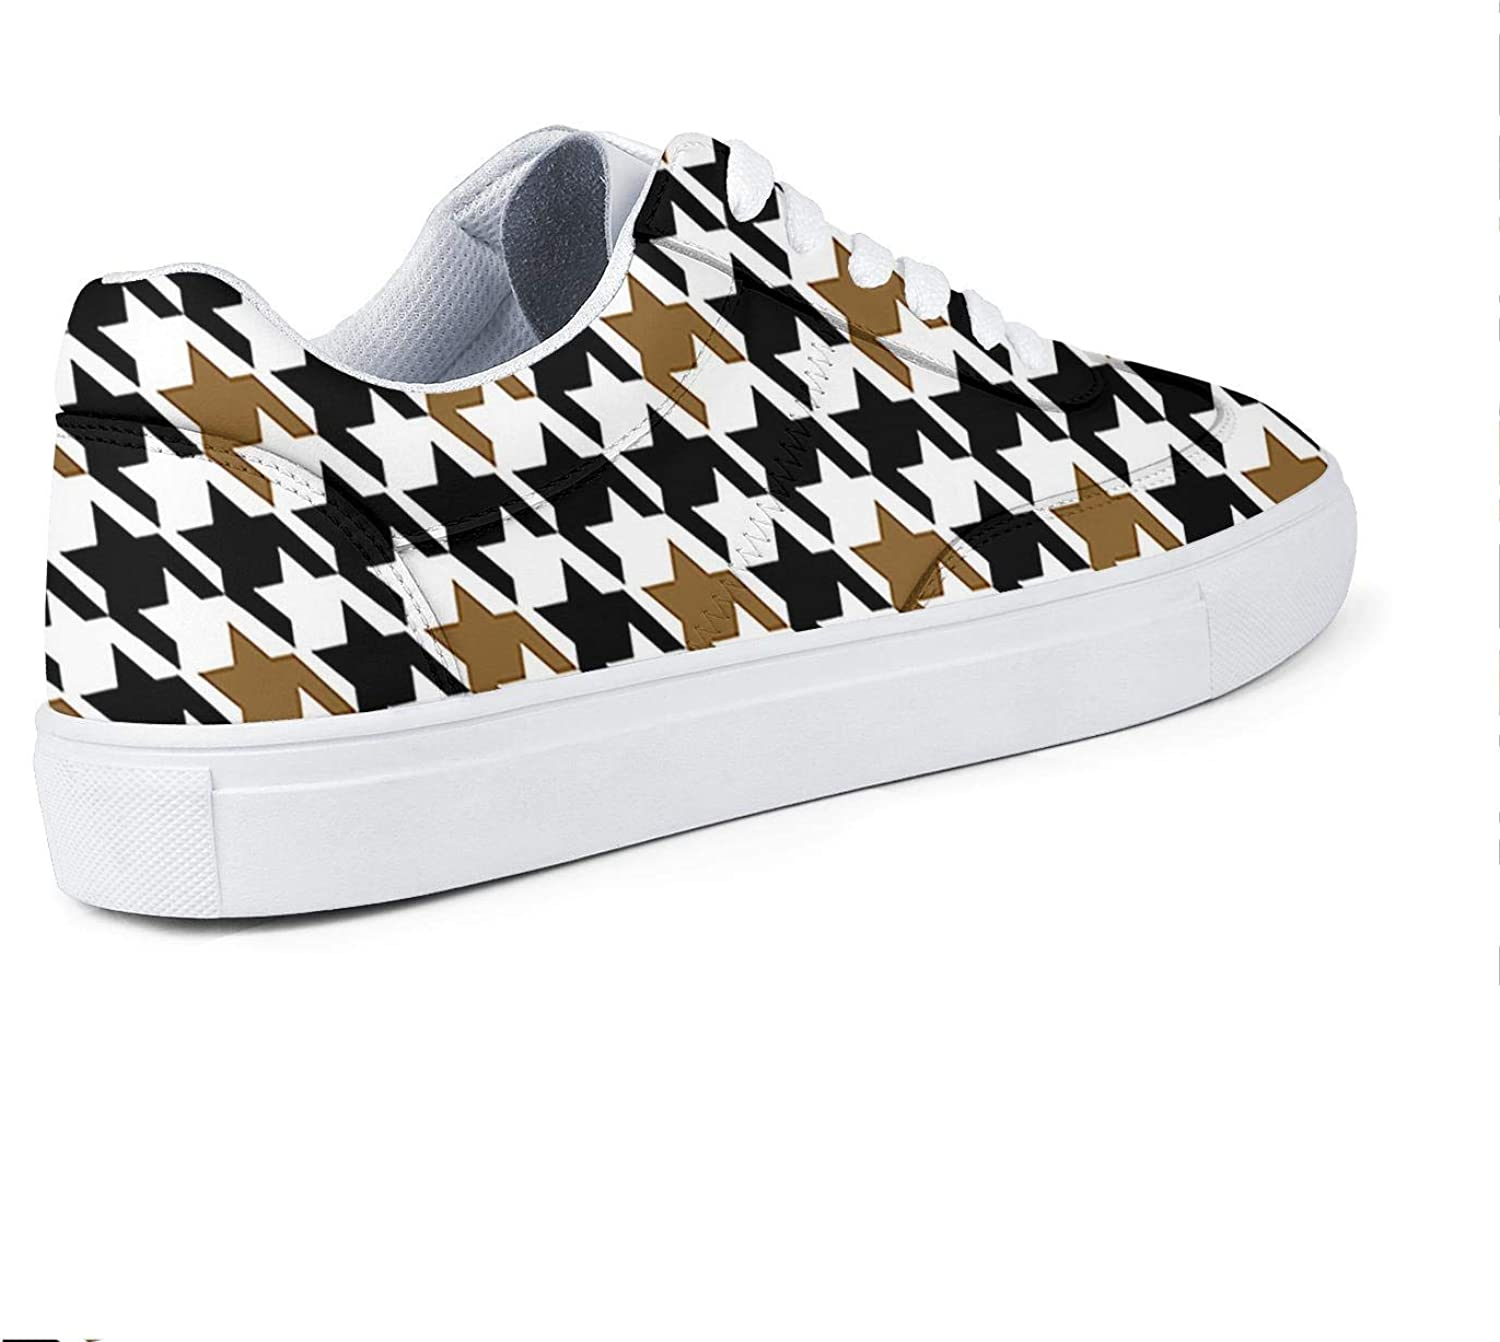 PROGIFToO Womans Colorful Houndstooth Checkerboard PU Leather Sneakers Lace Up Fashion Low Top Casual Running Shoes